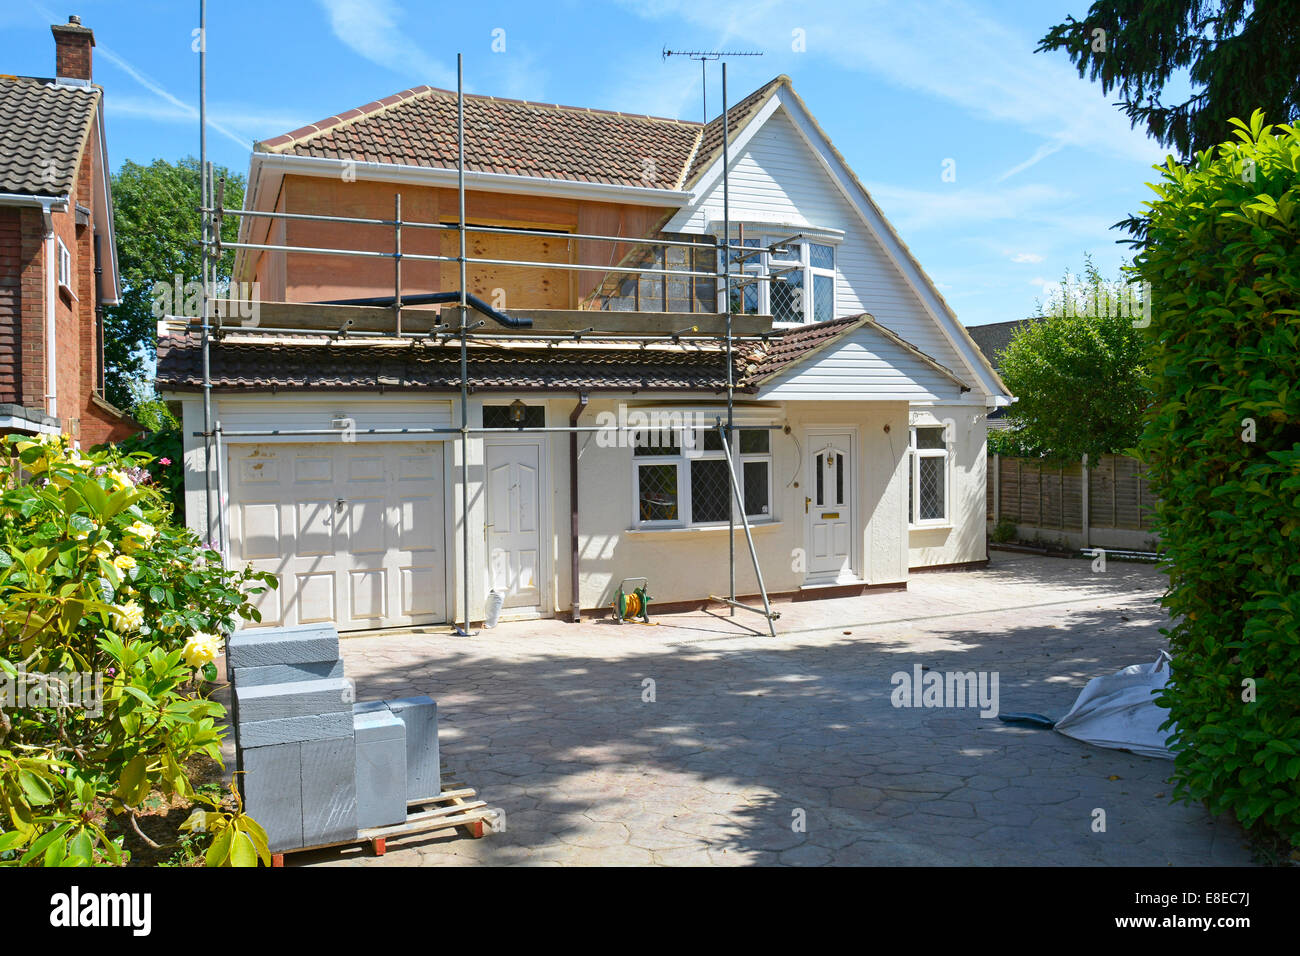 Building work in progress side & front of detached house to add additional timber framed bedrooms & extended - Stock Image